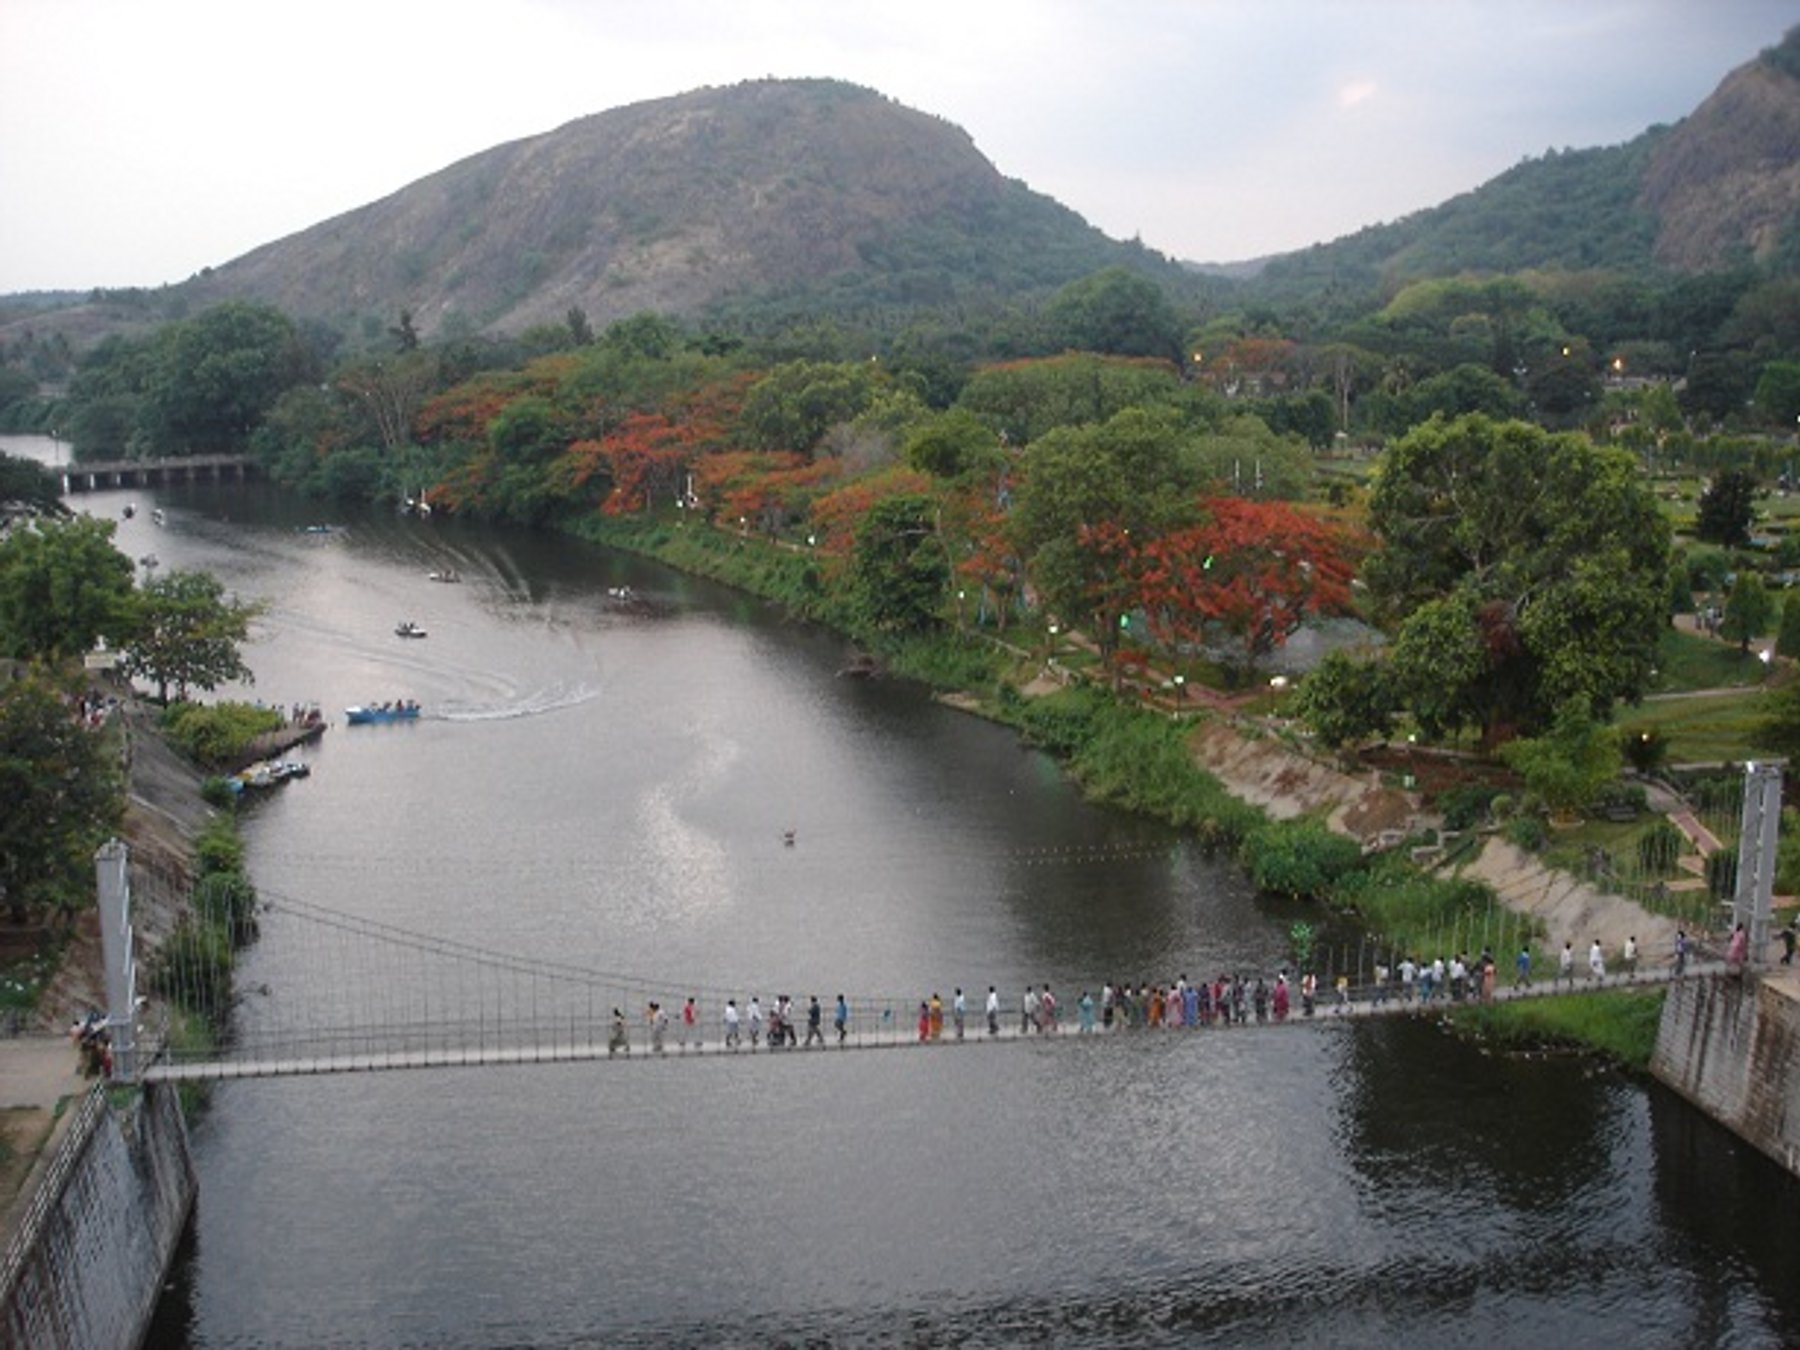 Malampuzha Garden  Picnic Spot with Boating Ropeway and